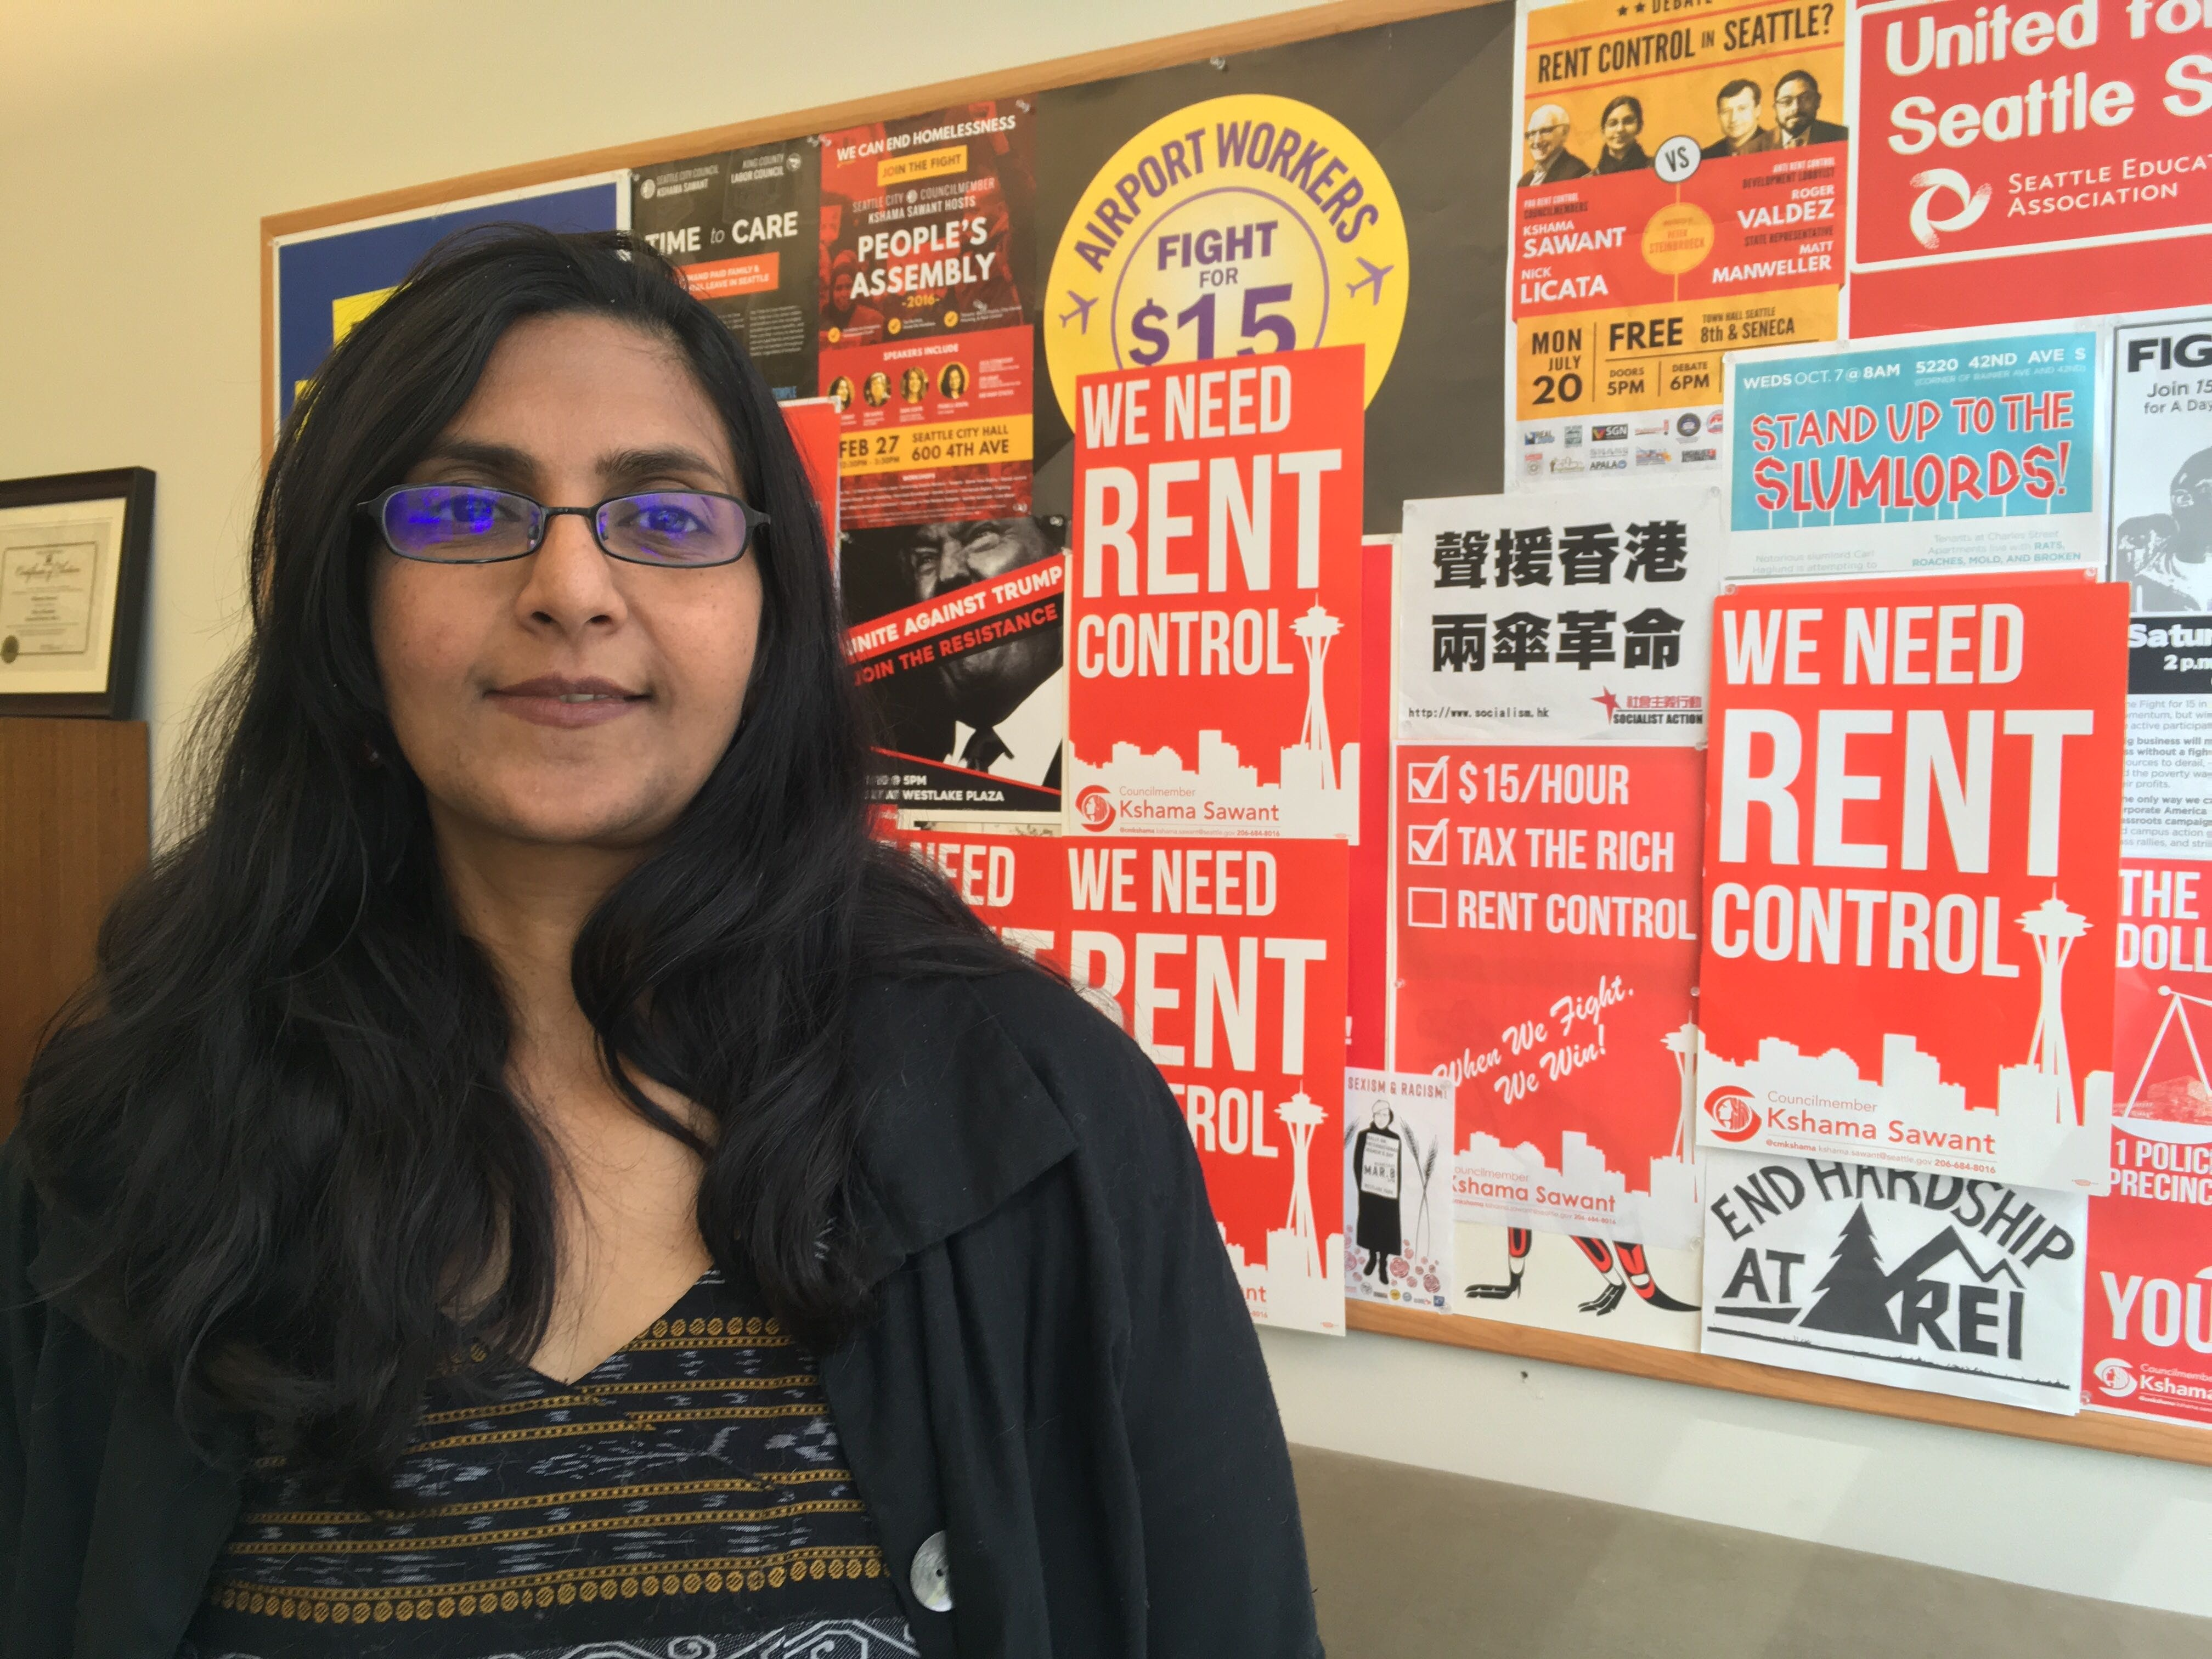 Sawant: This is the time to push for rent control